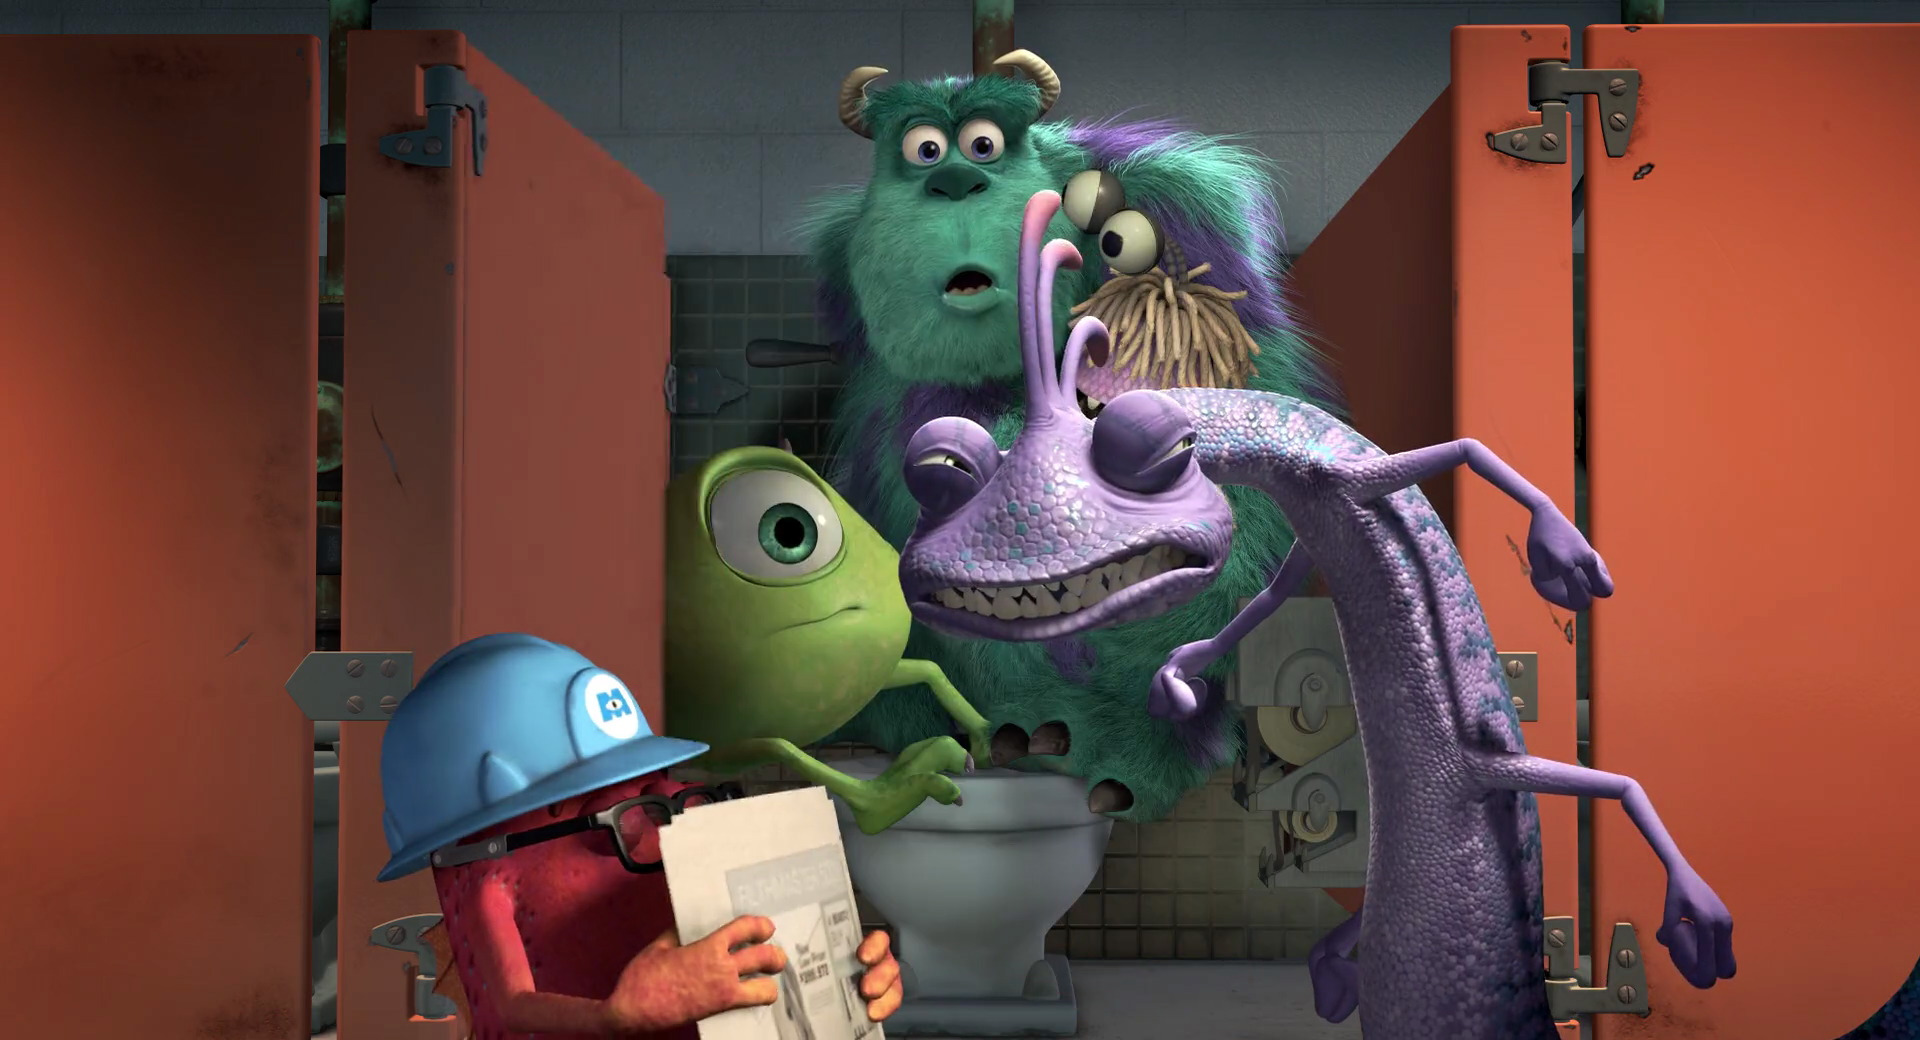 Image monsters inc disneyscreencapscom 4717jpg for Monsters inc bathroom scene